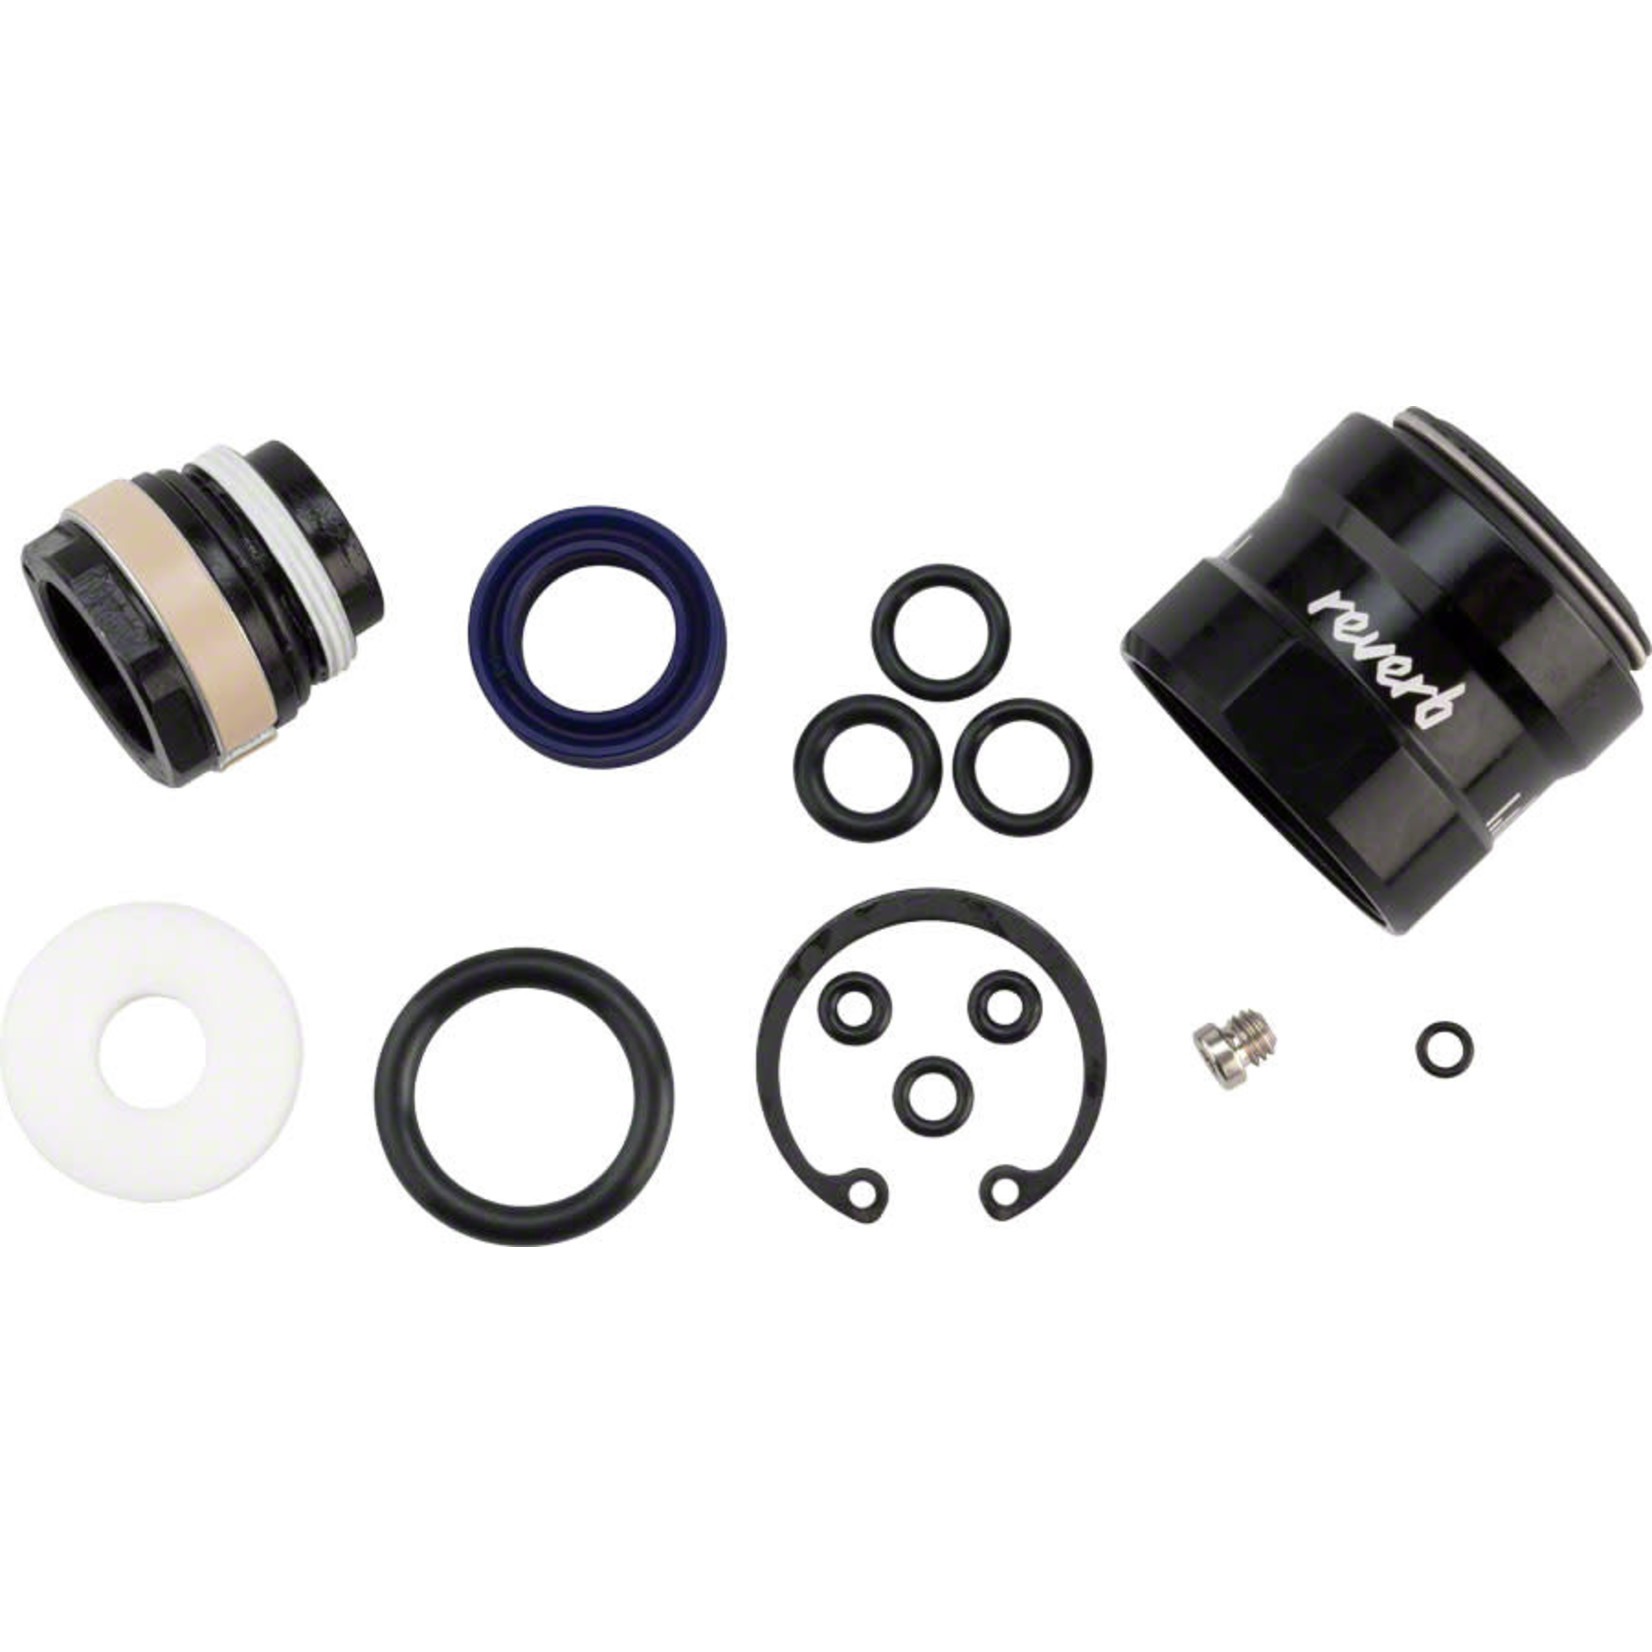 RockShox Rockshox Reverb Stealth A2 (2013-2016) 200 hour/1 year Service Kit with IFP